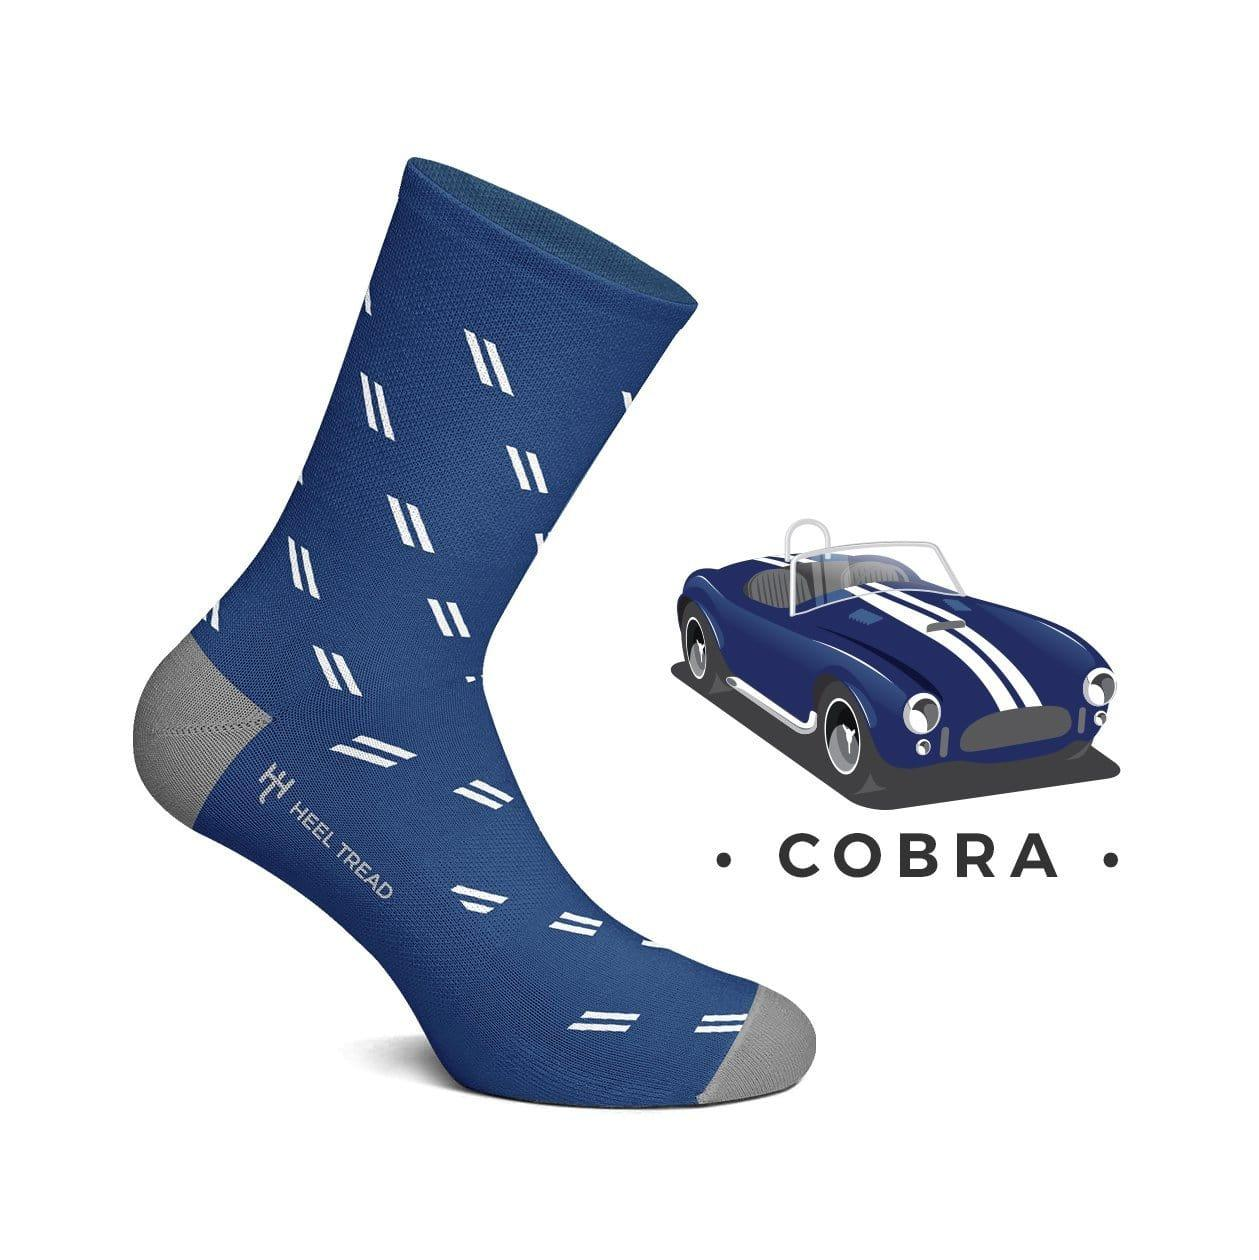 Cobra Socks - Corleon